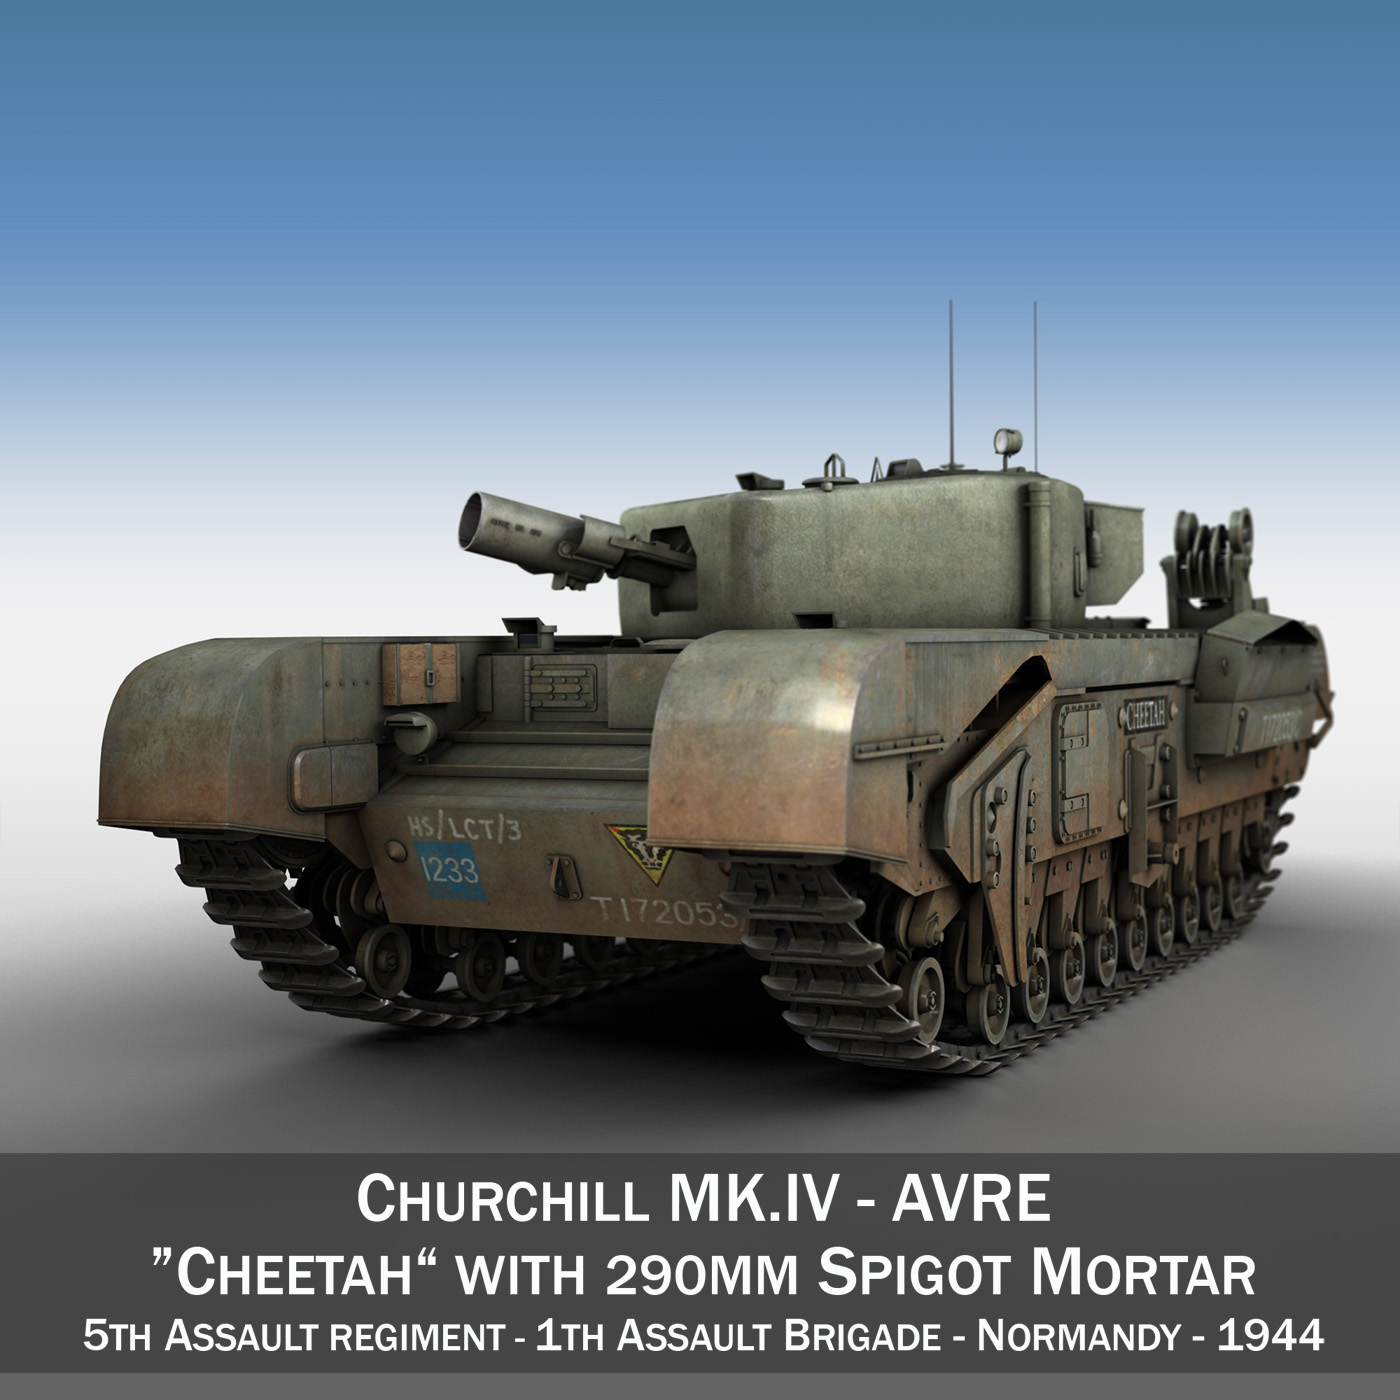 churchill mk iv avre - cheetah 3d model 3ds fbx c4d lwo obj 273012